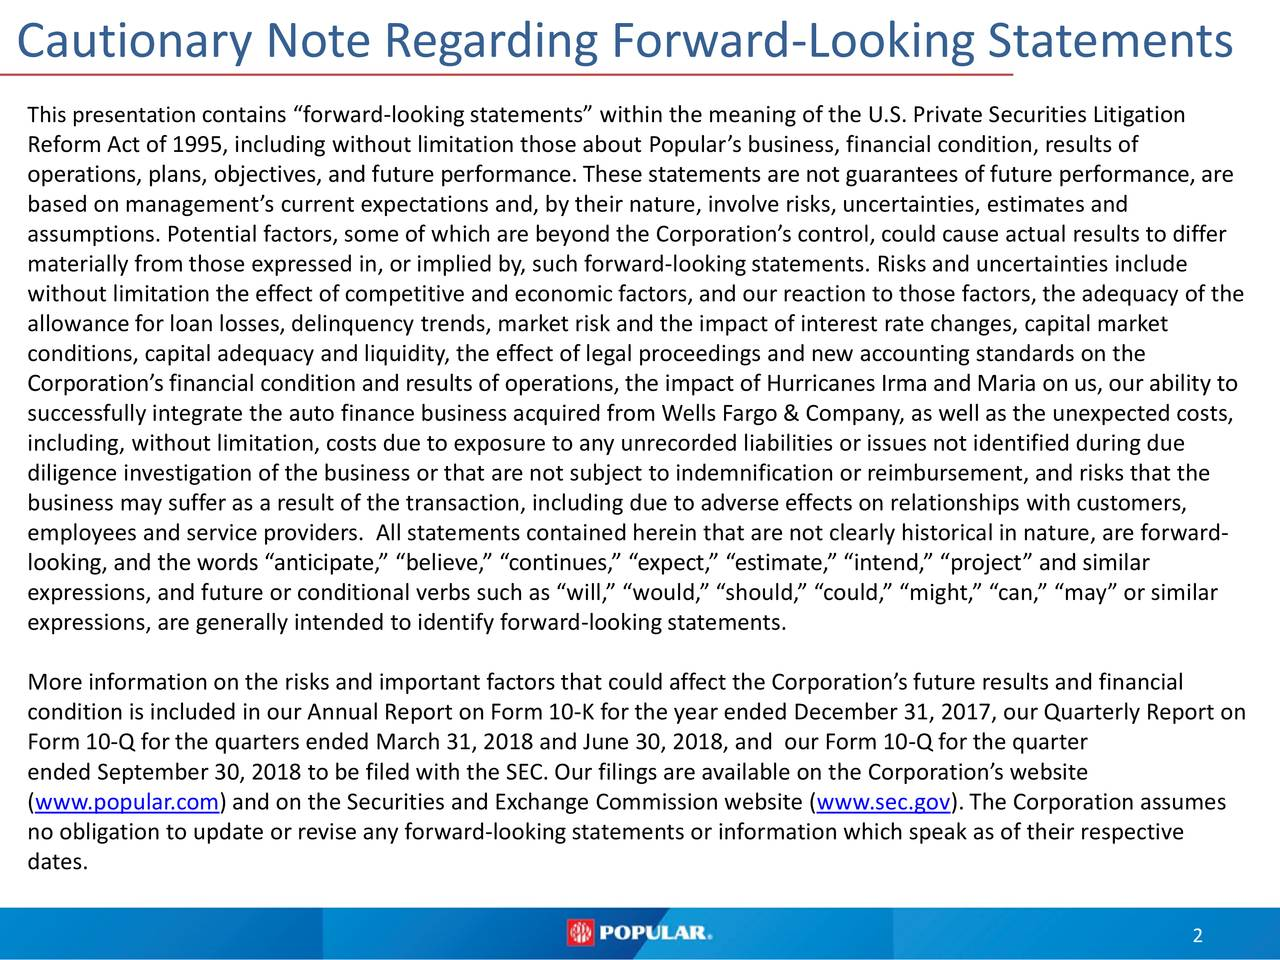 "This presentationcontains ""forward-looking statements"" within the meaning of the U.S. Private Securities Litigation Reform Act of 1995, including without limitation those about Popular's business, financial condition, results of operations, plans, objectives, and future performance. These statements are not guarantees of future performance, are based on management's current expectations and, by their nature, involve risks, uncertainties, estimates and assumptions. Potential factors, some of which are beyond the Corporation's control, could cause actual results to differ materially from those expressed in, or implied by, such forward-lookingstatements. Risks and uncertainties include without limitation the effect of competitive and economic factors, and our reaction to those factors, the adequacy of the allowance for loan losses, delinquency trends, market risk and the impact of interest rate changes, capital market conditions, capital adequacy and liquidity, the effect of legal proceedings and new accounting standards on the Corporation's financial condition and results of operations, the impact of Hurricanes Irma and Maria on us, our ability to successfully integrate the auto finance business acquired from Wells Fargo & Company, as well as the unexpected costs, including, without limitation, costs due to exposure to any unrecorded liabilities or issues not identified during due diligence investigation of the business or that are not subject to indemnification or reimbursement, and risks that the business may suffer as a result of the transaction, including due to adverse effects on relationships with customers, employees and service providers. All statements contained herein that are not clearly historical in nature, are forward- looking, and the words ""anticipate,"" ""believe,"" ""continues,"" ""expect,"" ""estimate,"" ""intend,"" ""project"" and similar expressions, and future or conditional verbs such as ""will,"" ""would,"" ""should,"" ""could,"" ""might,"" ""can,"" ""may"" or similar expressions, are generally intended to identify forward-looking statements. More information on the risks and important factors that could affect the Corporation's future results and financial condition is included in our Annual Report on Form 10-K for the year ended December 31, 2017, our Quarterly Report on Form 10-Q for the quarters ended March 31, 2018 and June 30, 2018, and our Form 10-Q for the quarter ended September 30, 2018 to be filed with the SEC. Our filings are available on the Corporation's website (www.popular.com) and on the Securities and Exchange Commission website (www.sec.gov). The Corporation assumes no obligation to update or revise any forward-looking statements or information which speak as of their respective dates. 2"